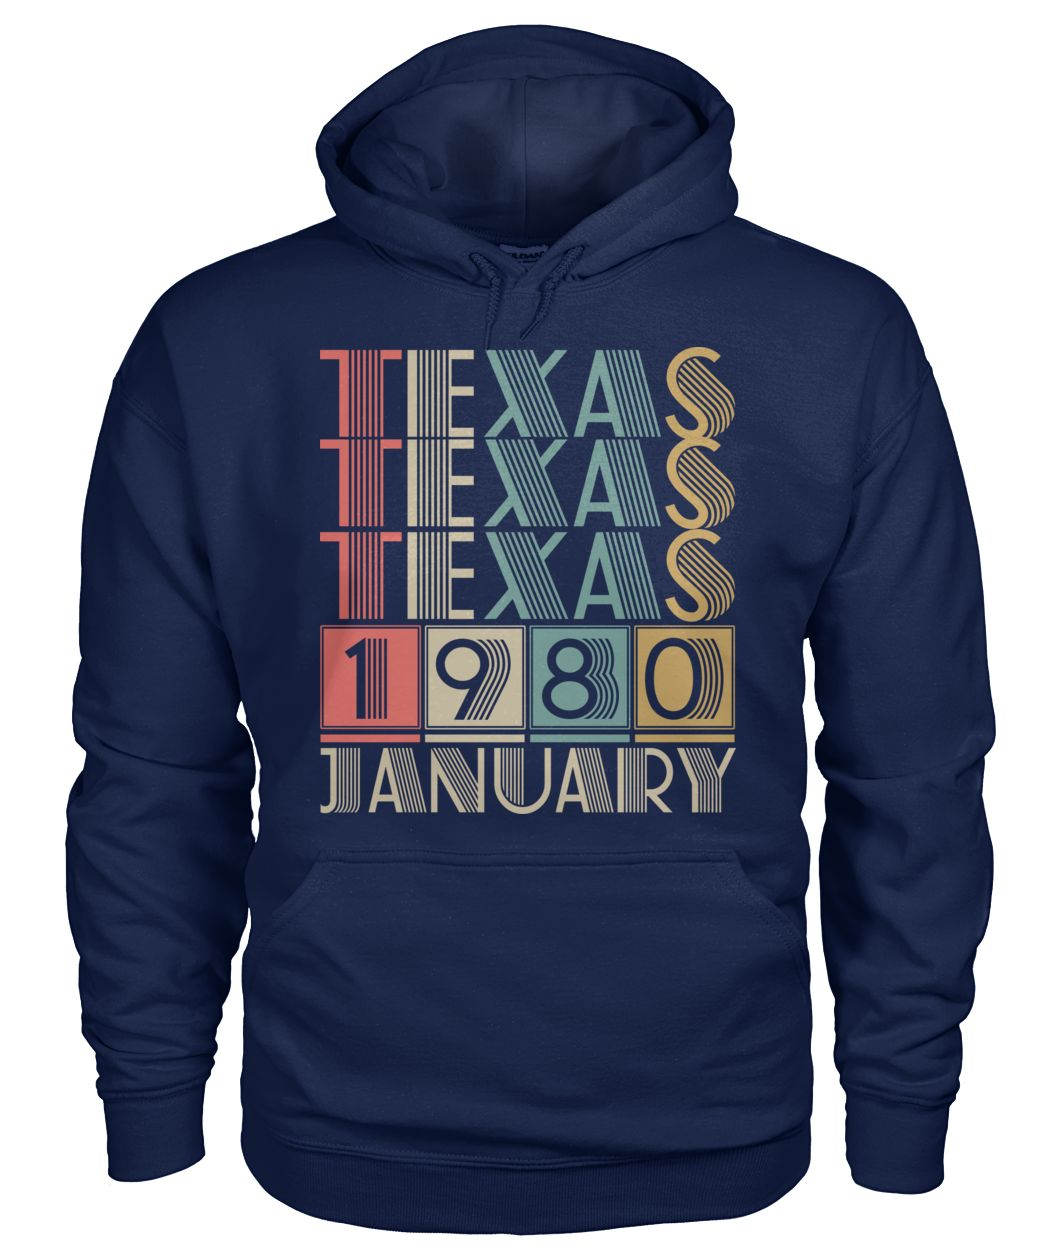 Born in Texas in January 1980 t shirt-Short Sleeves - TEEHOT.COM